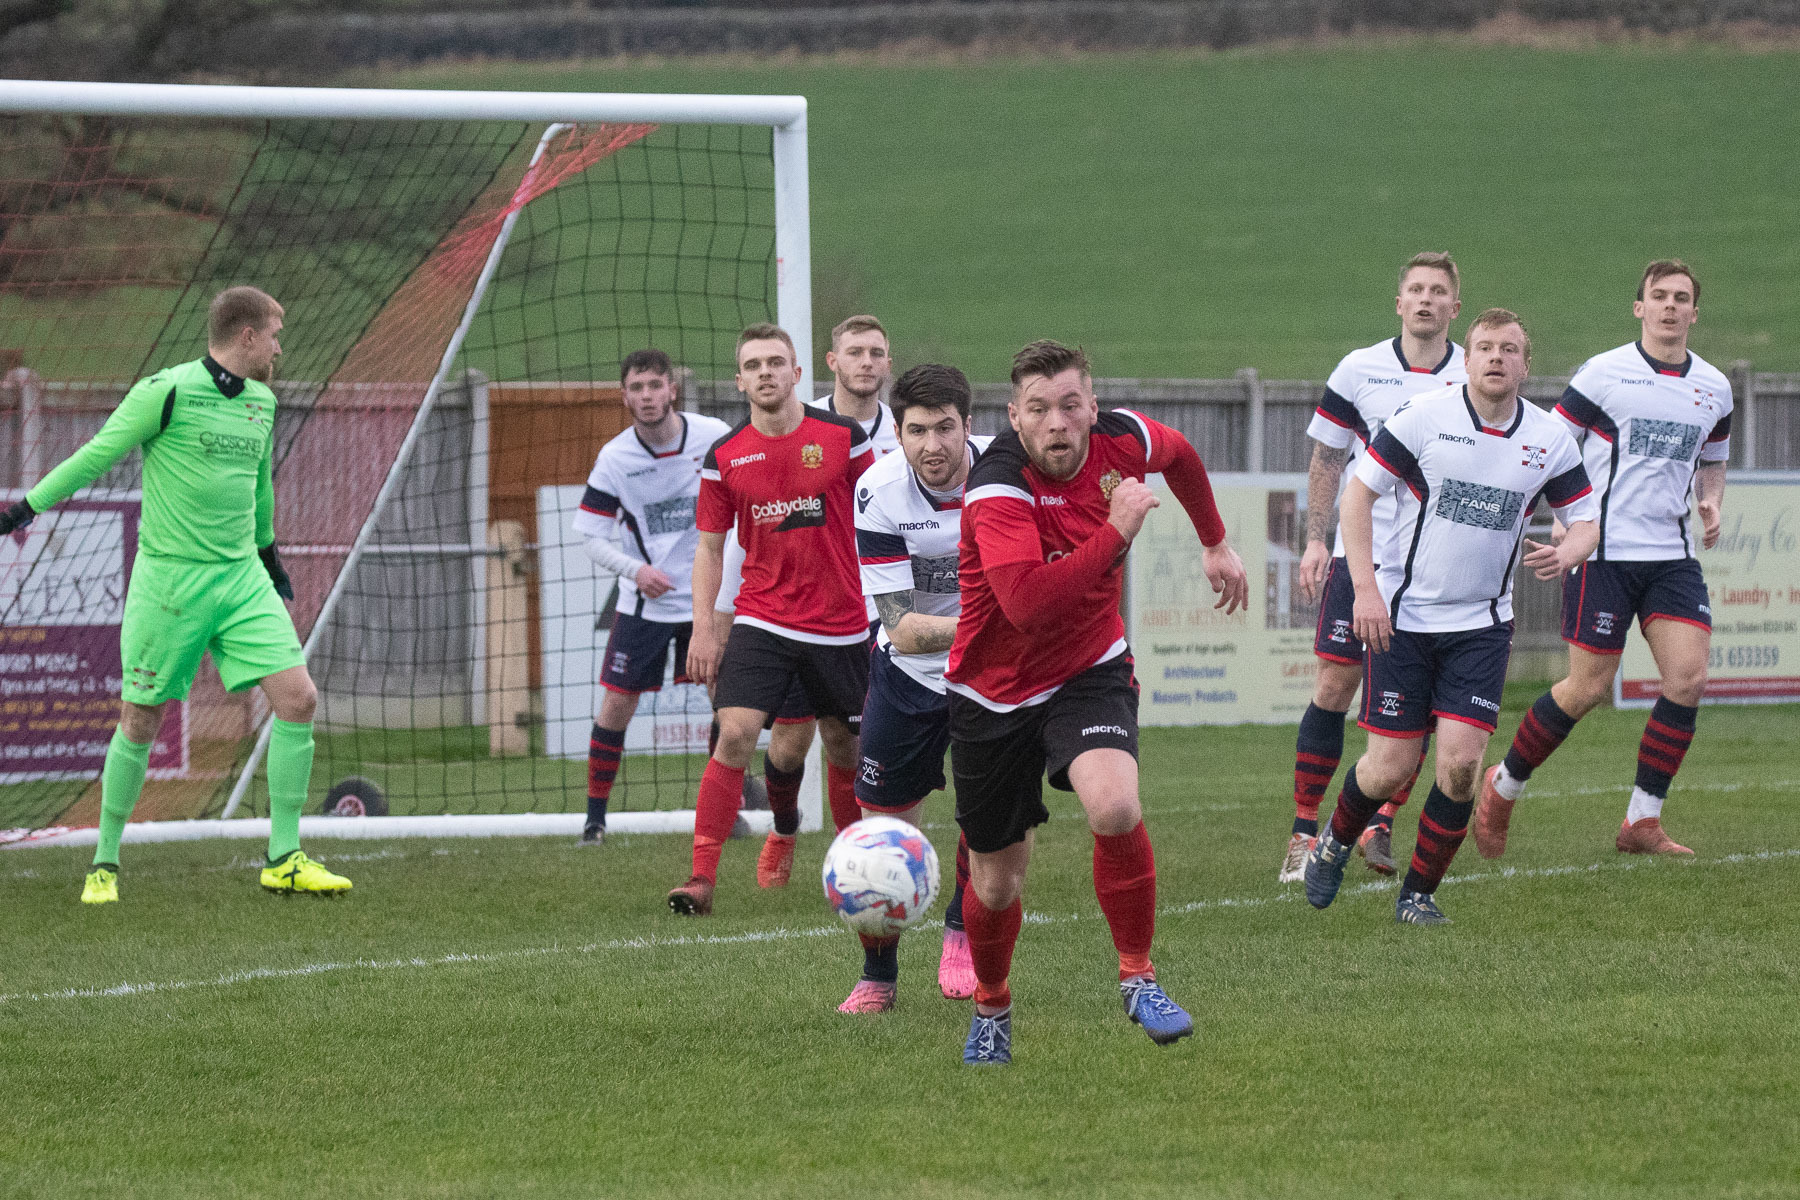 Aidan Kirby, centre, was the hero for Silsden, scoring the winner in a 4-3 win at Squires Gate. Picture: David Brett